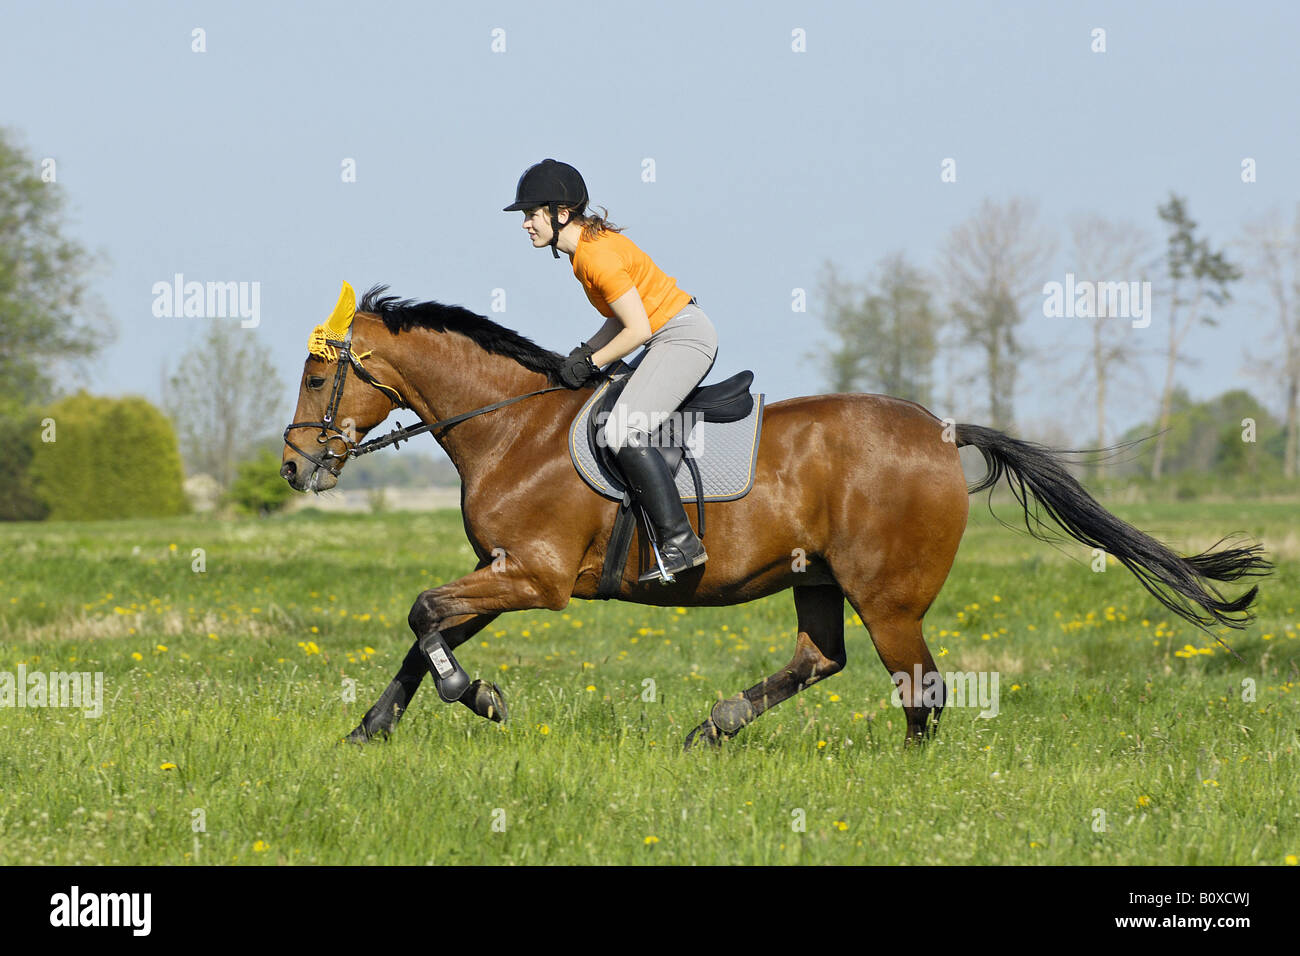 Young Lady Rider On American Standard Bred Horse